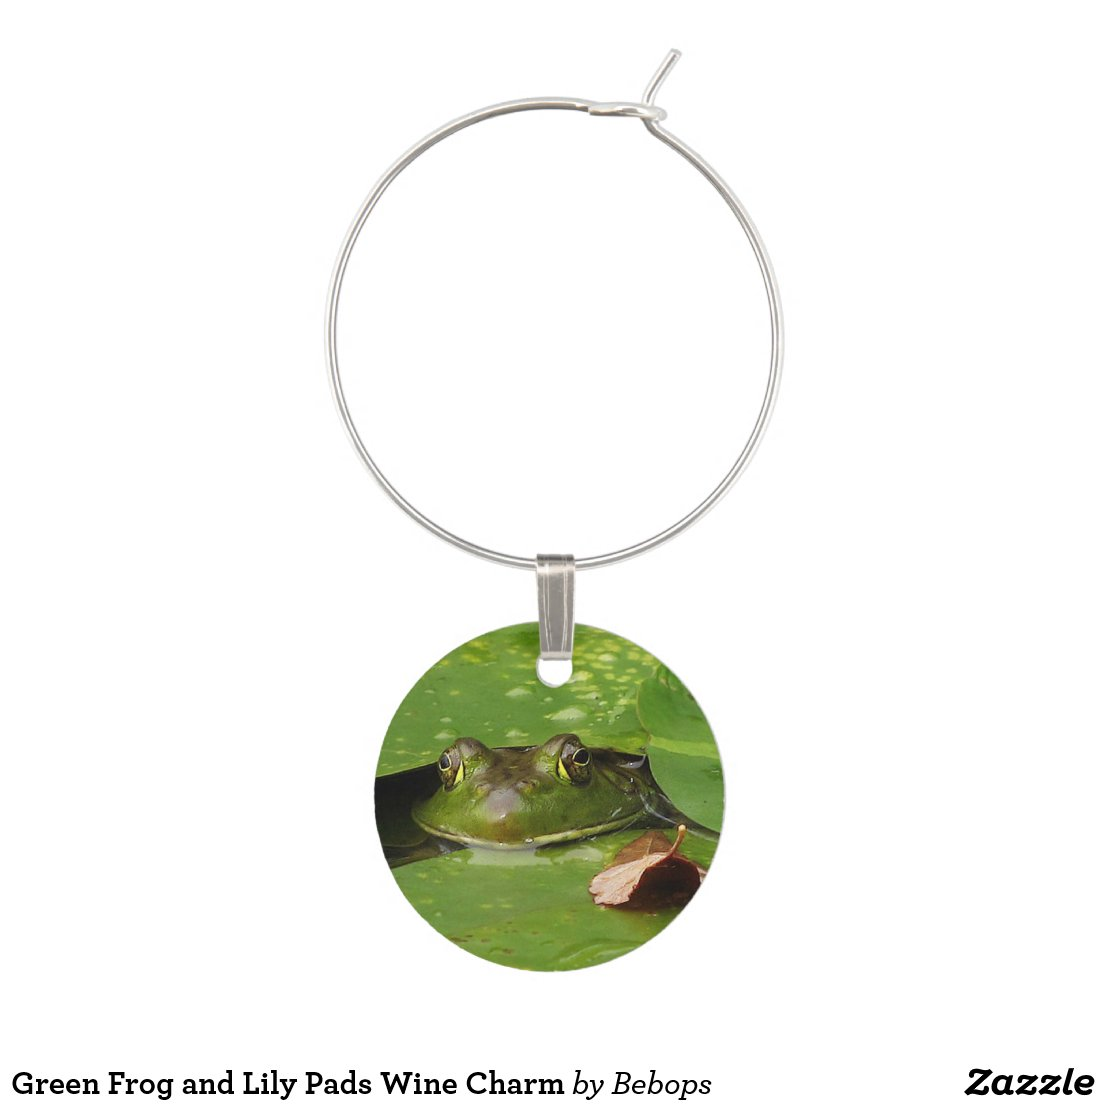 Green Frog and Lily Pads Wine Charm